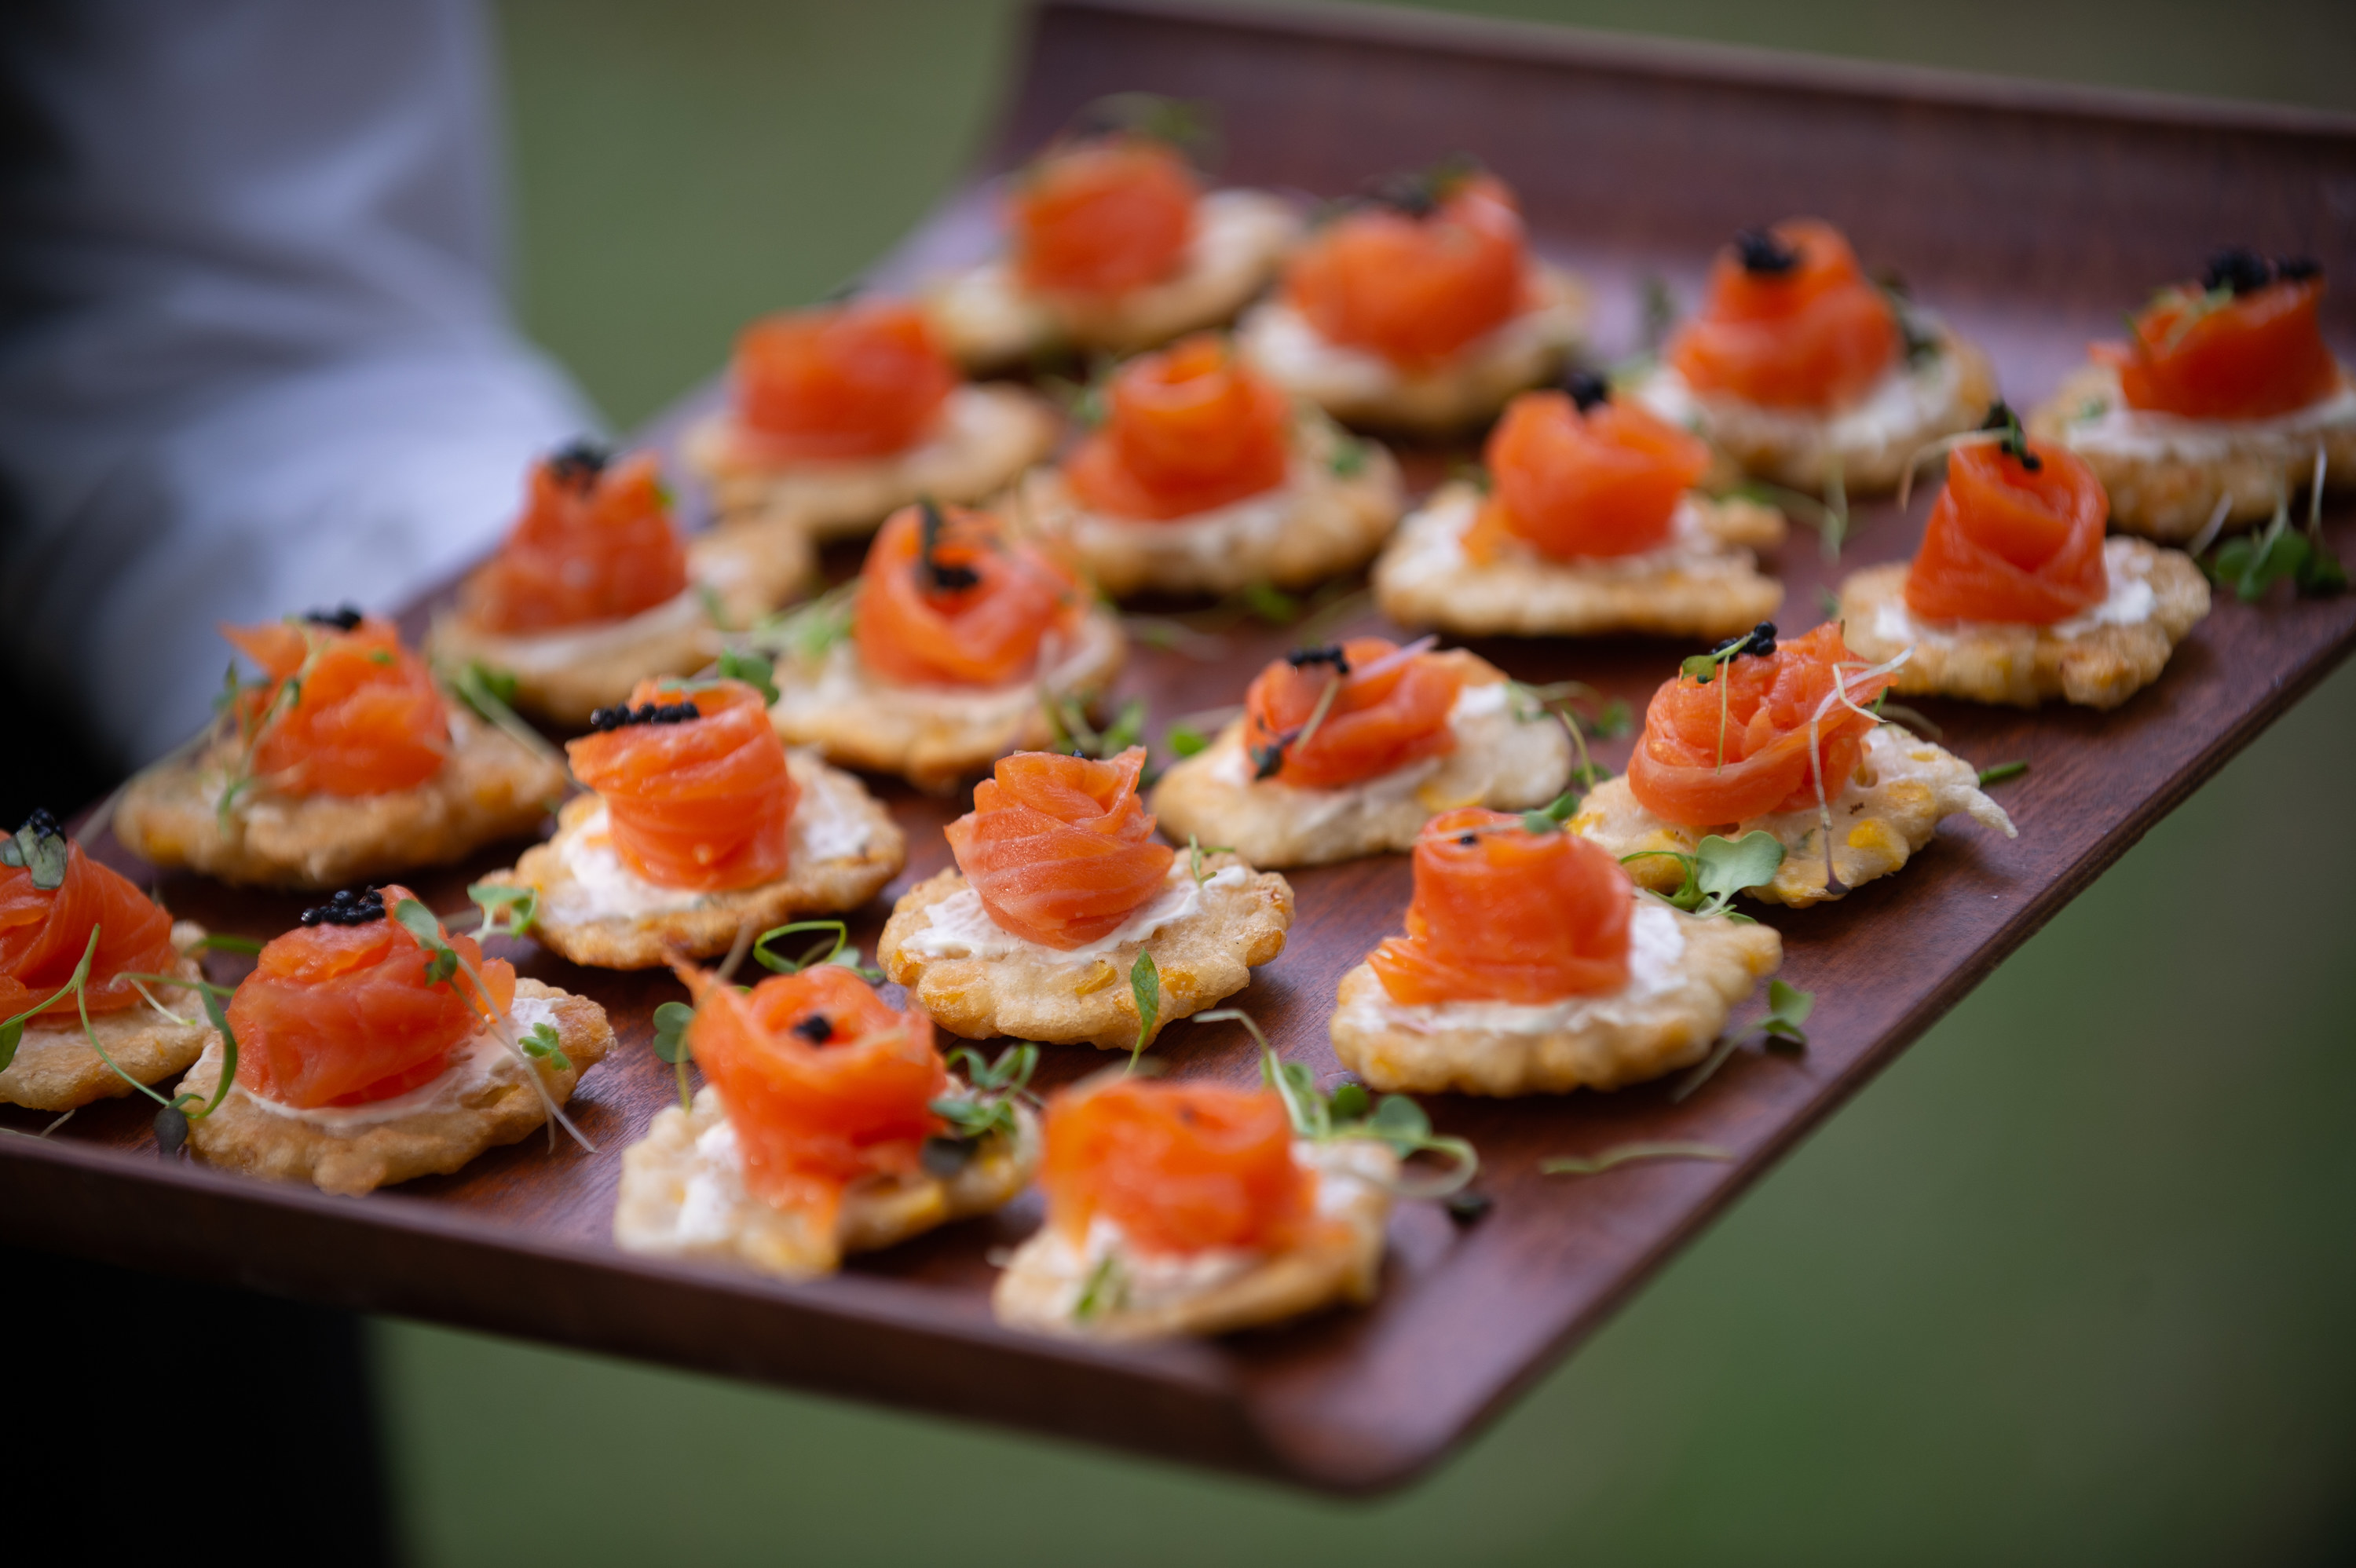 Server carrying appetizers on a tray